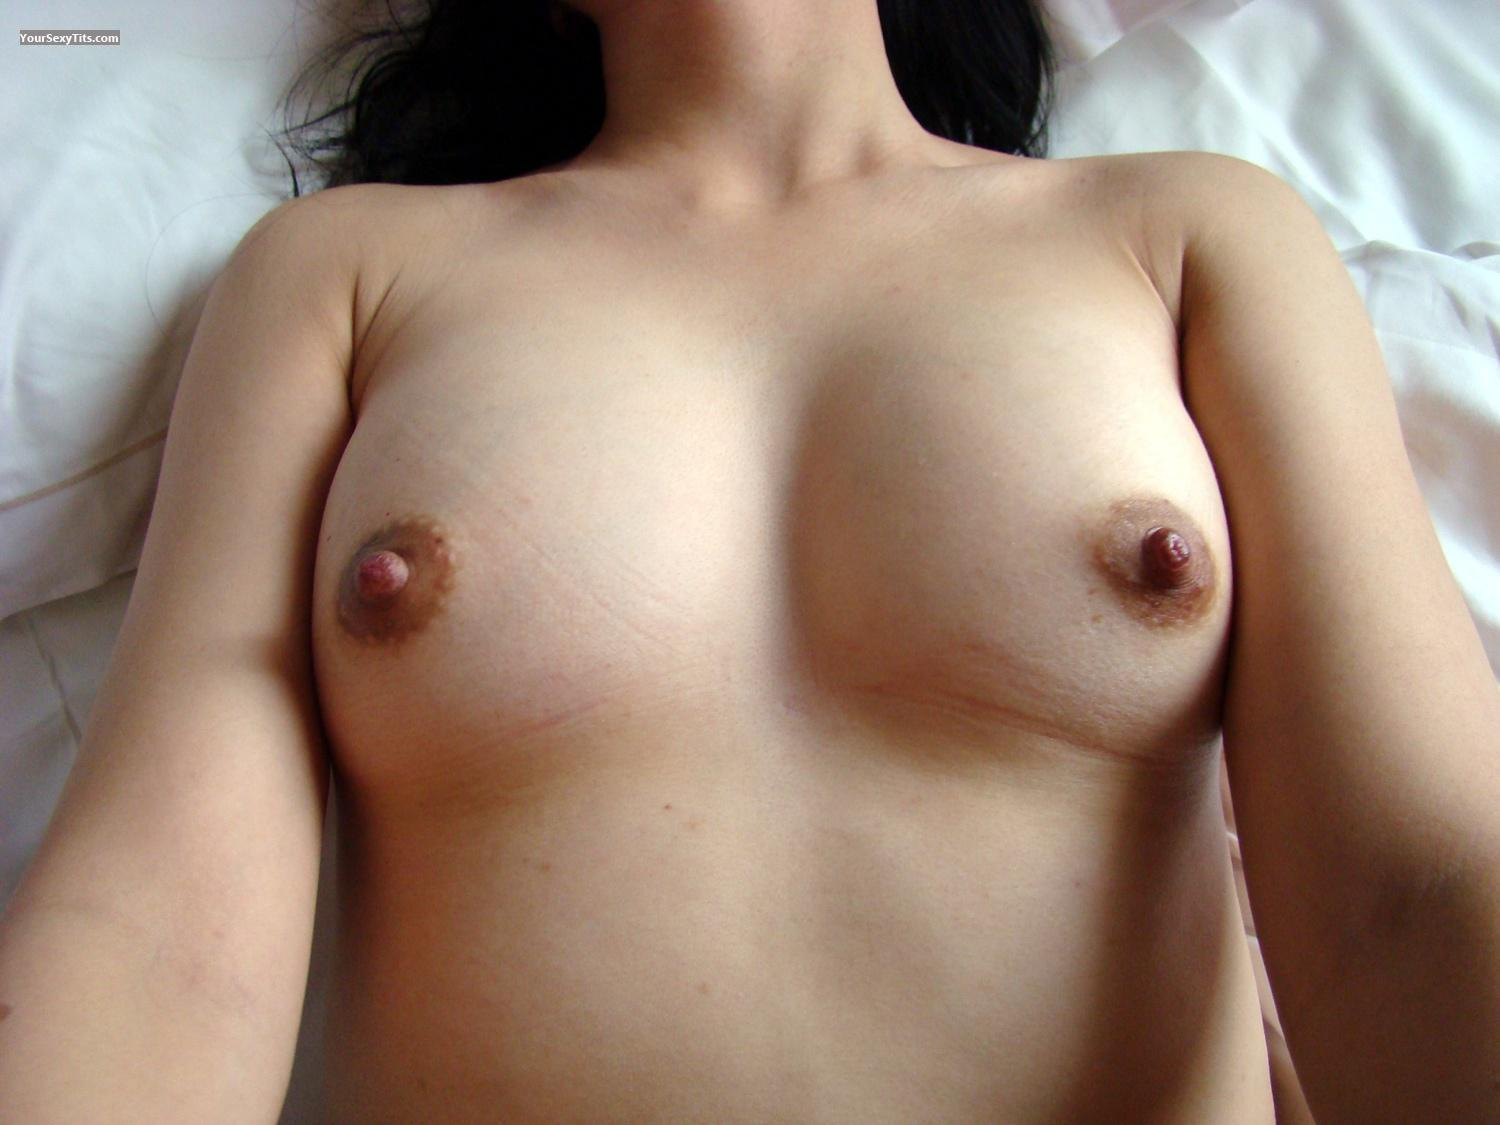 Tit Flash: My Small Tits By IPhone (Selfie) - Lin from China